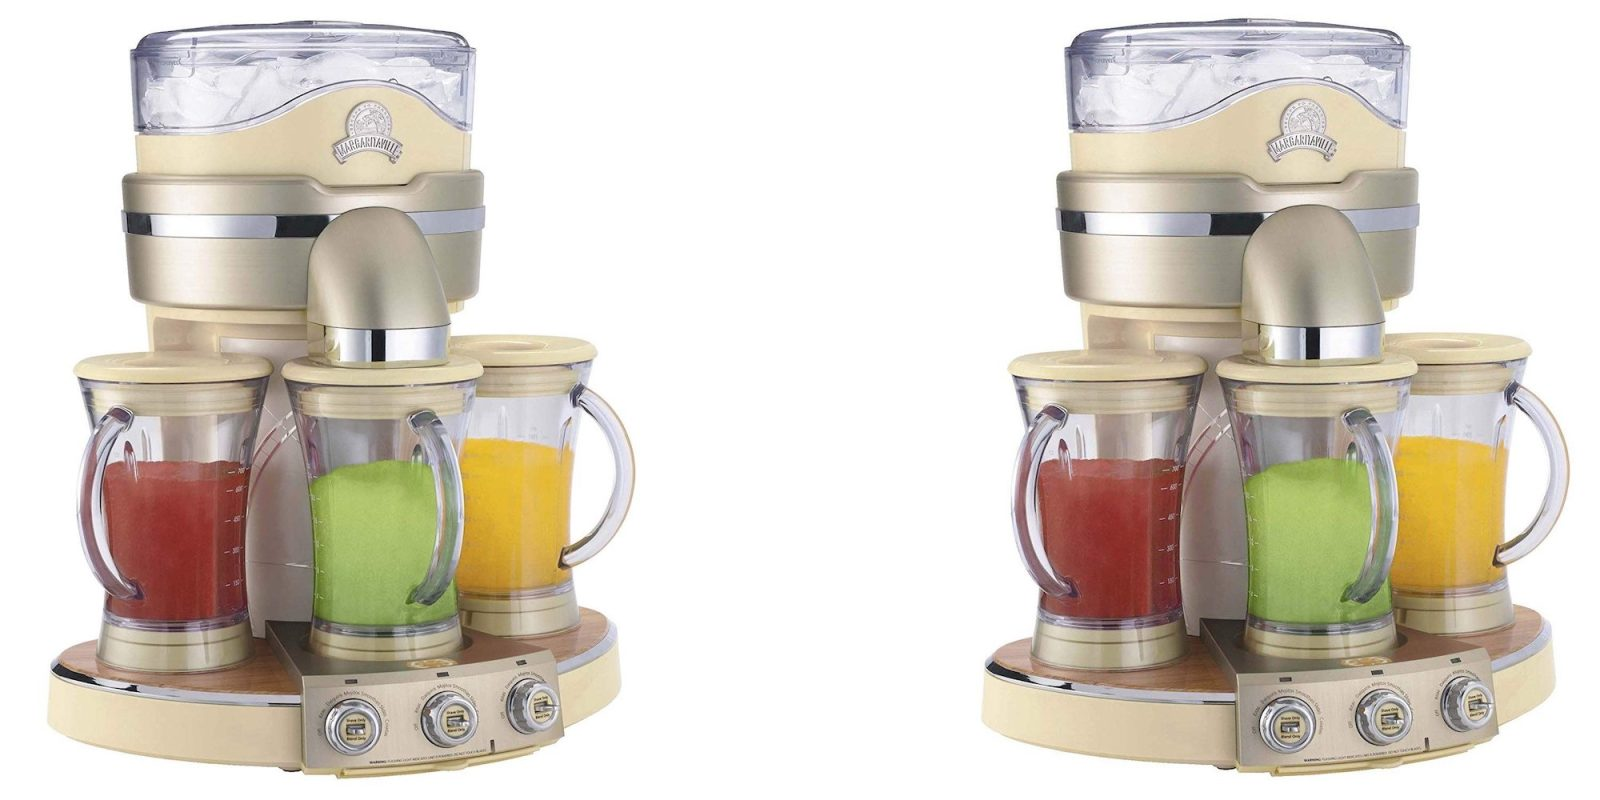 Head back to Margaritaville, this frozen drink maker is $100+ off (Today only)